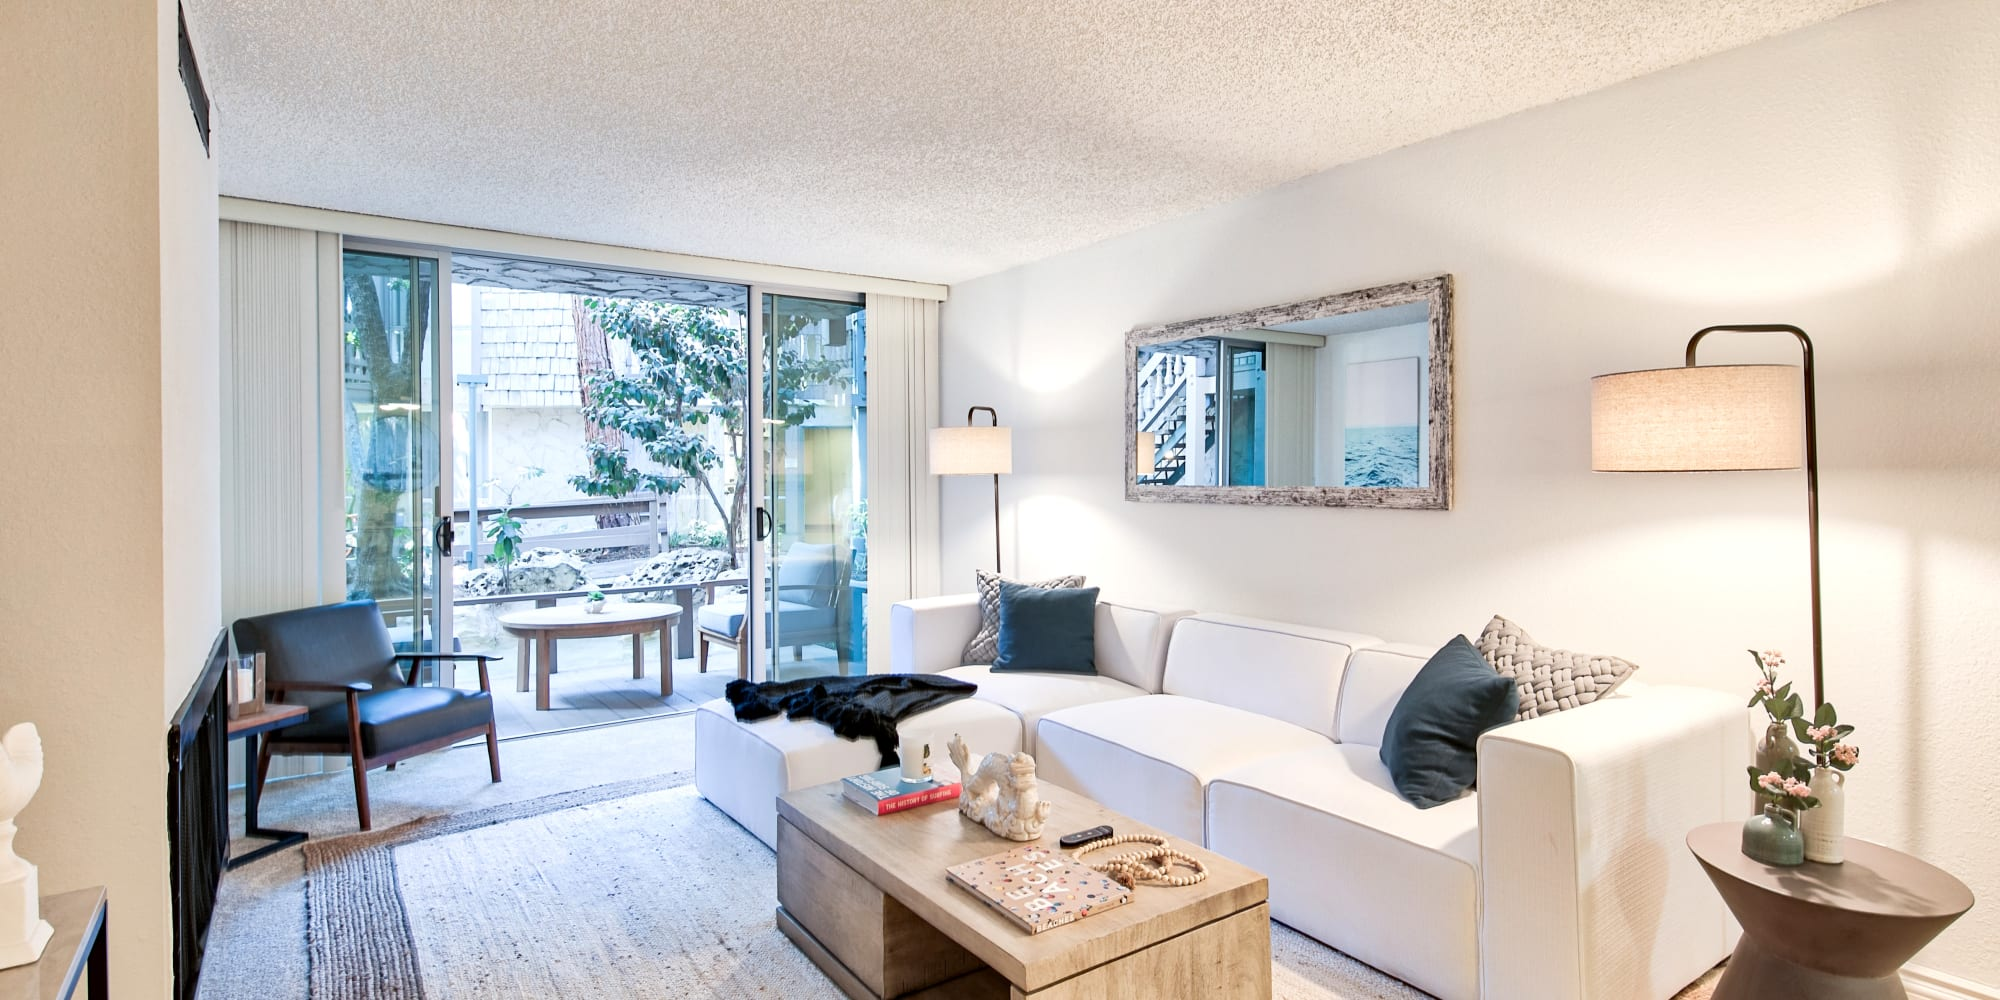 Model home's living room with private patio access at The Meadows in Culver City, California